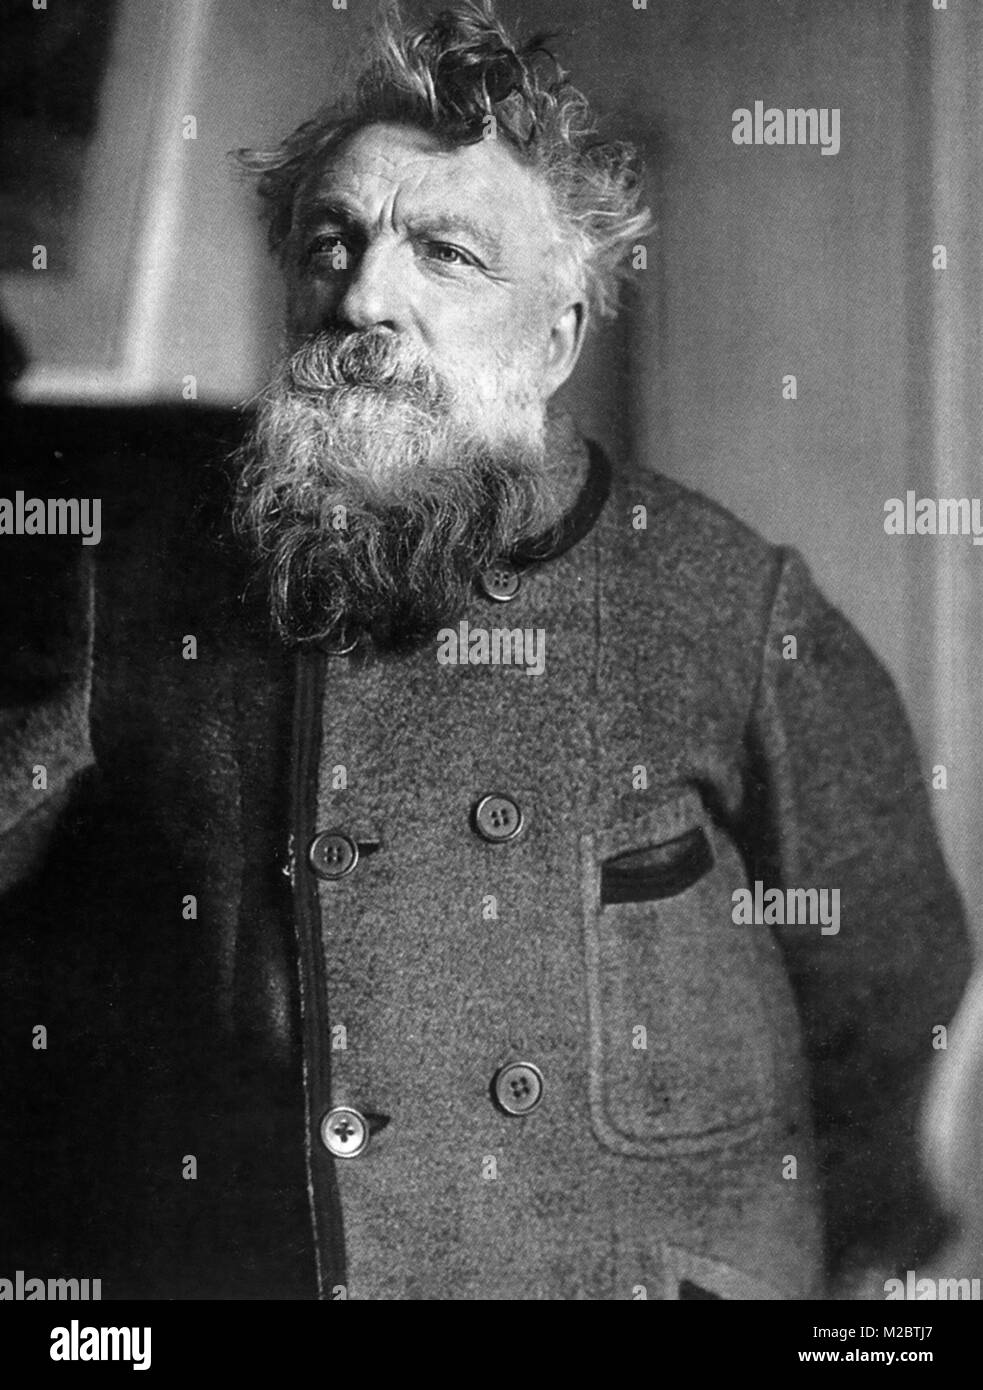 AUGUSTE RODIN (1840-1917) French sculptor - Stock Image